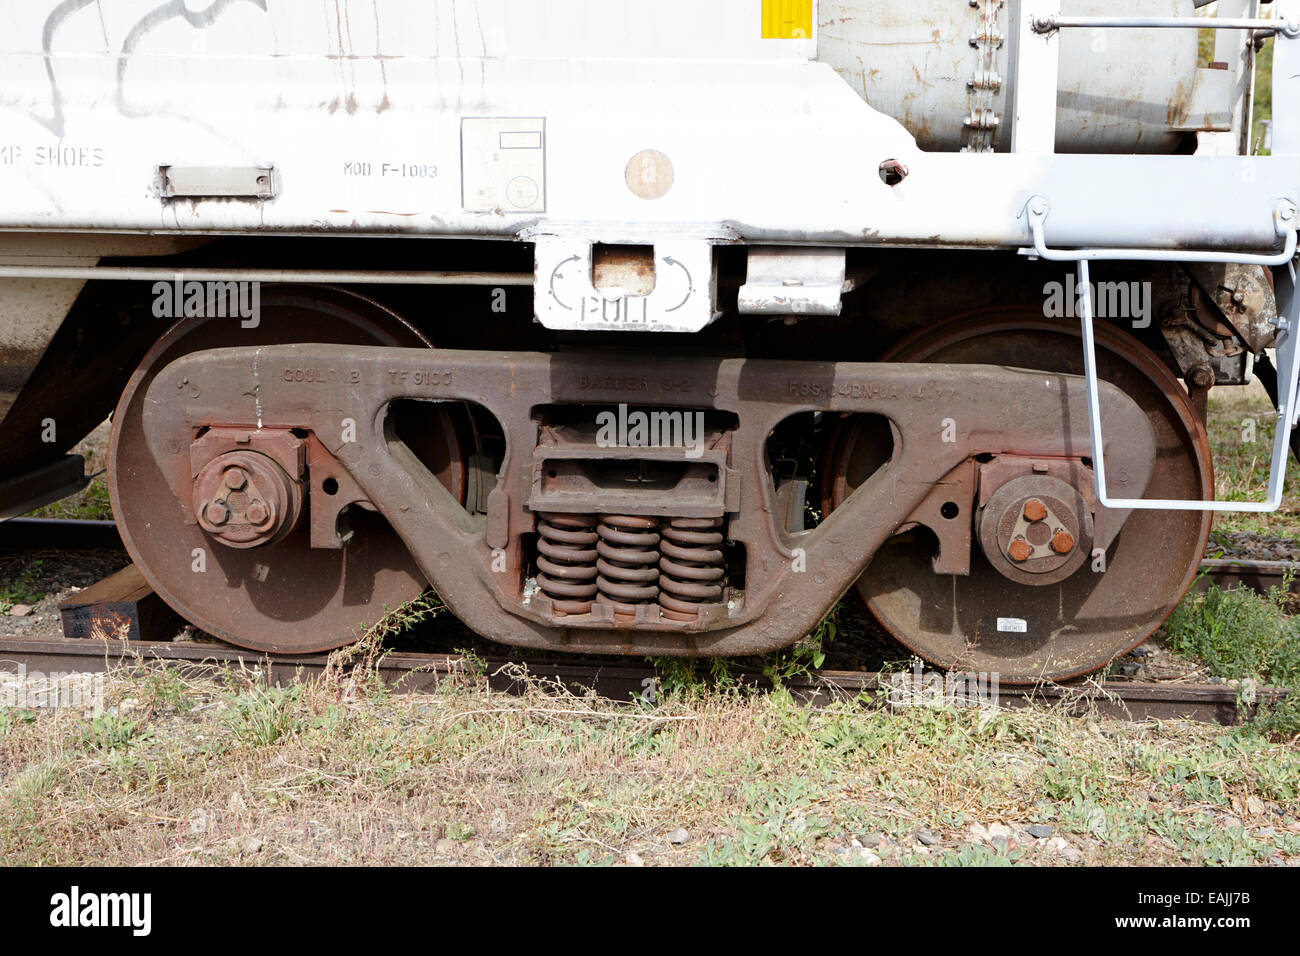 barber s-2 variable damped railroad car on a freight tanker Saskatchewan Canada - Stock Image